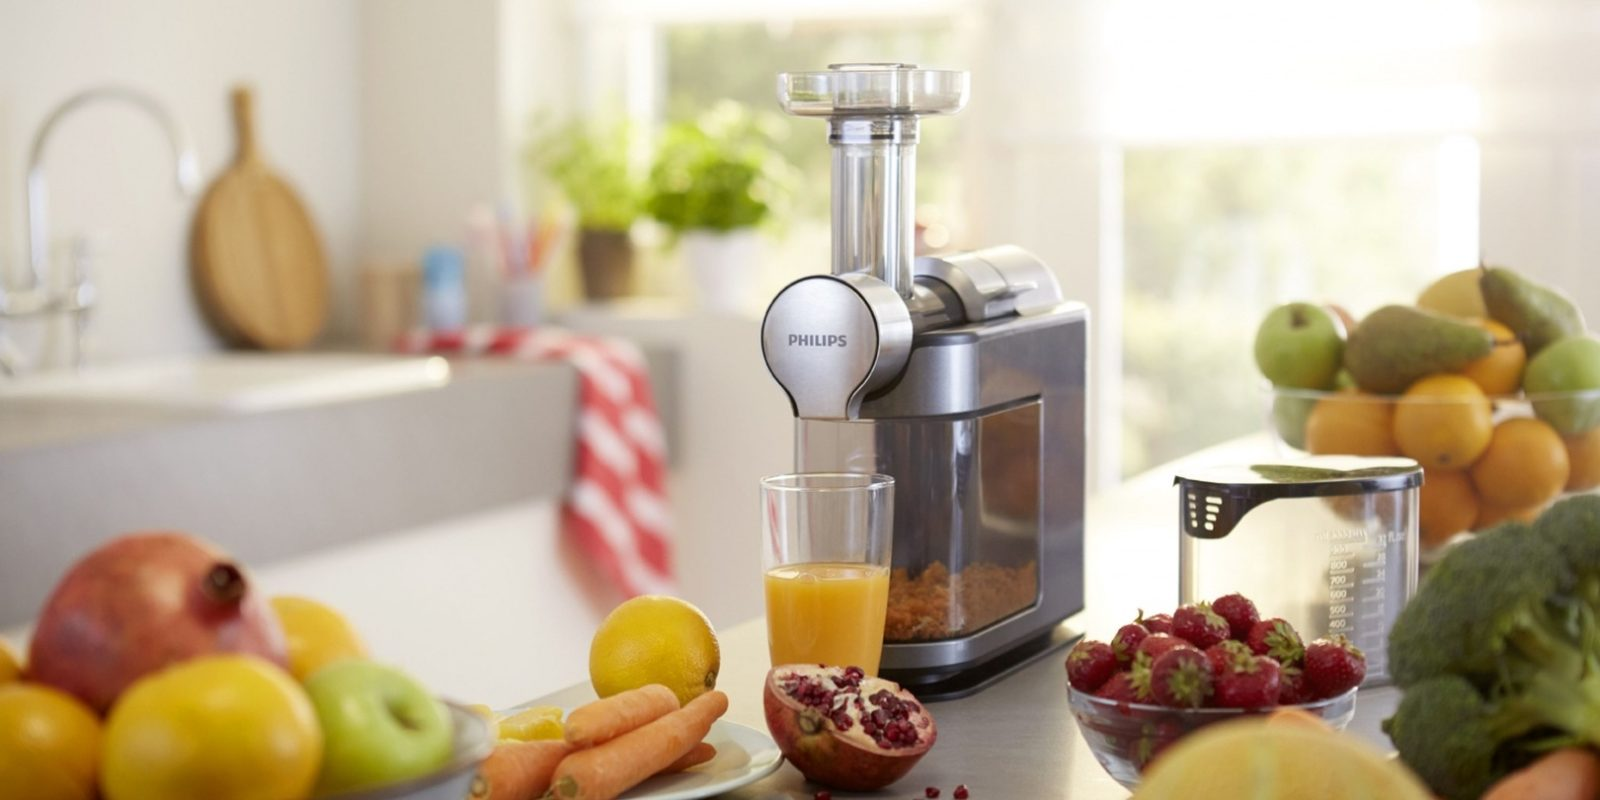 Huge 50% price drop on the Philips Avance Juice Extractor, now $150 shipped